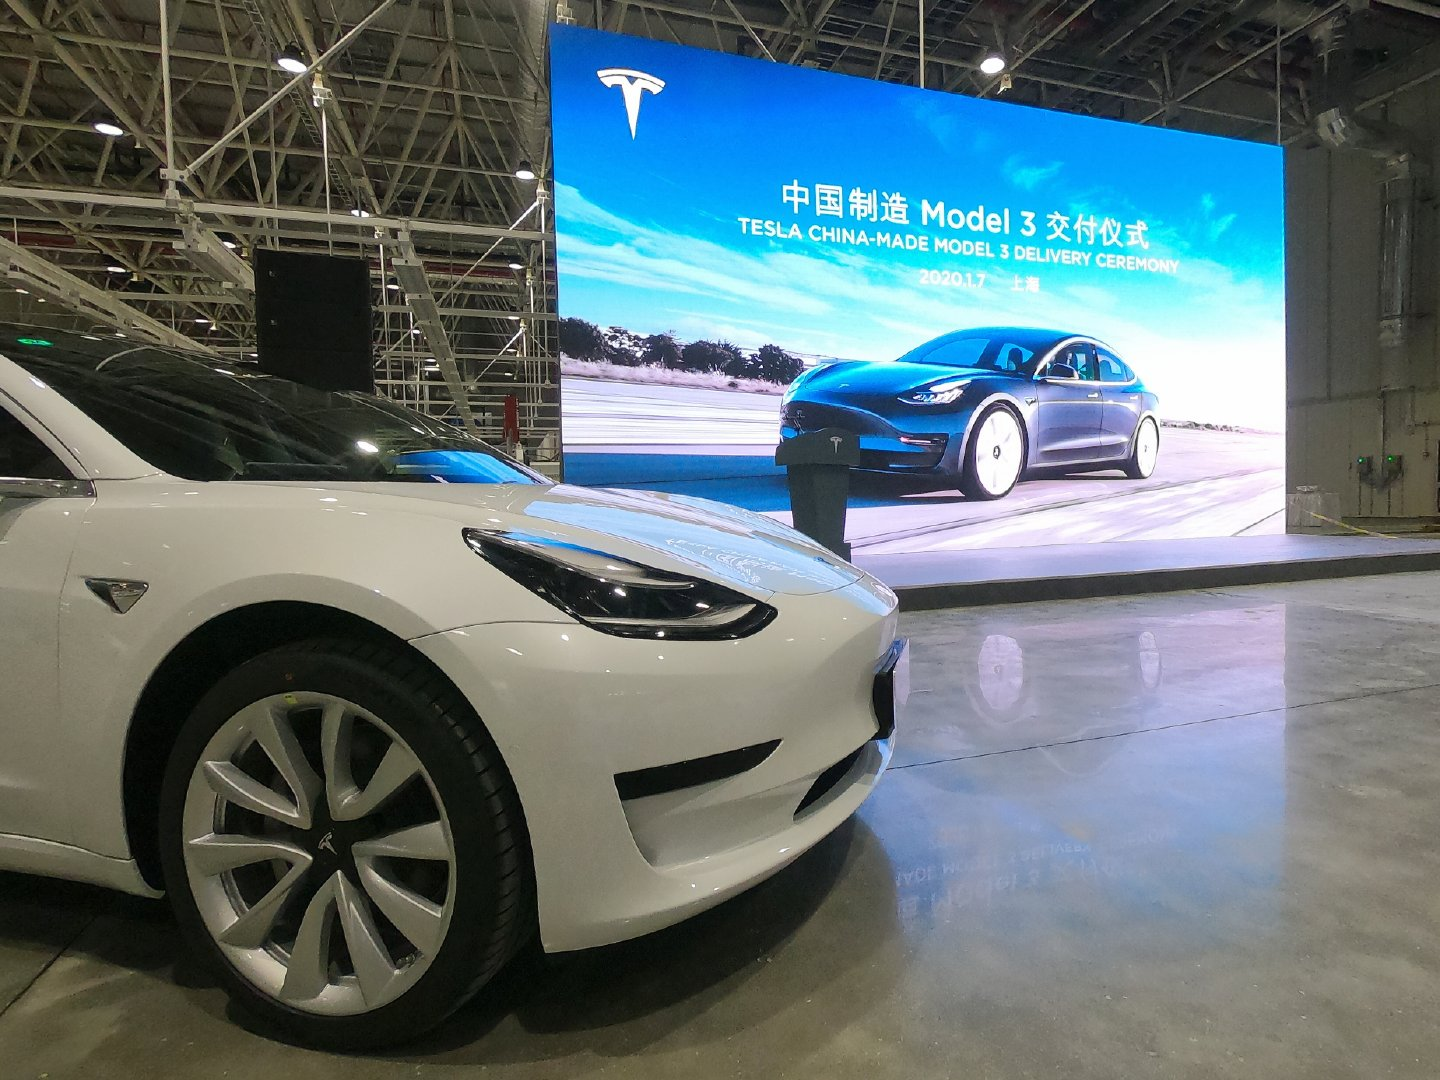 Tesla-China-Model-3-Delivery-Event-Jan-7-4